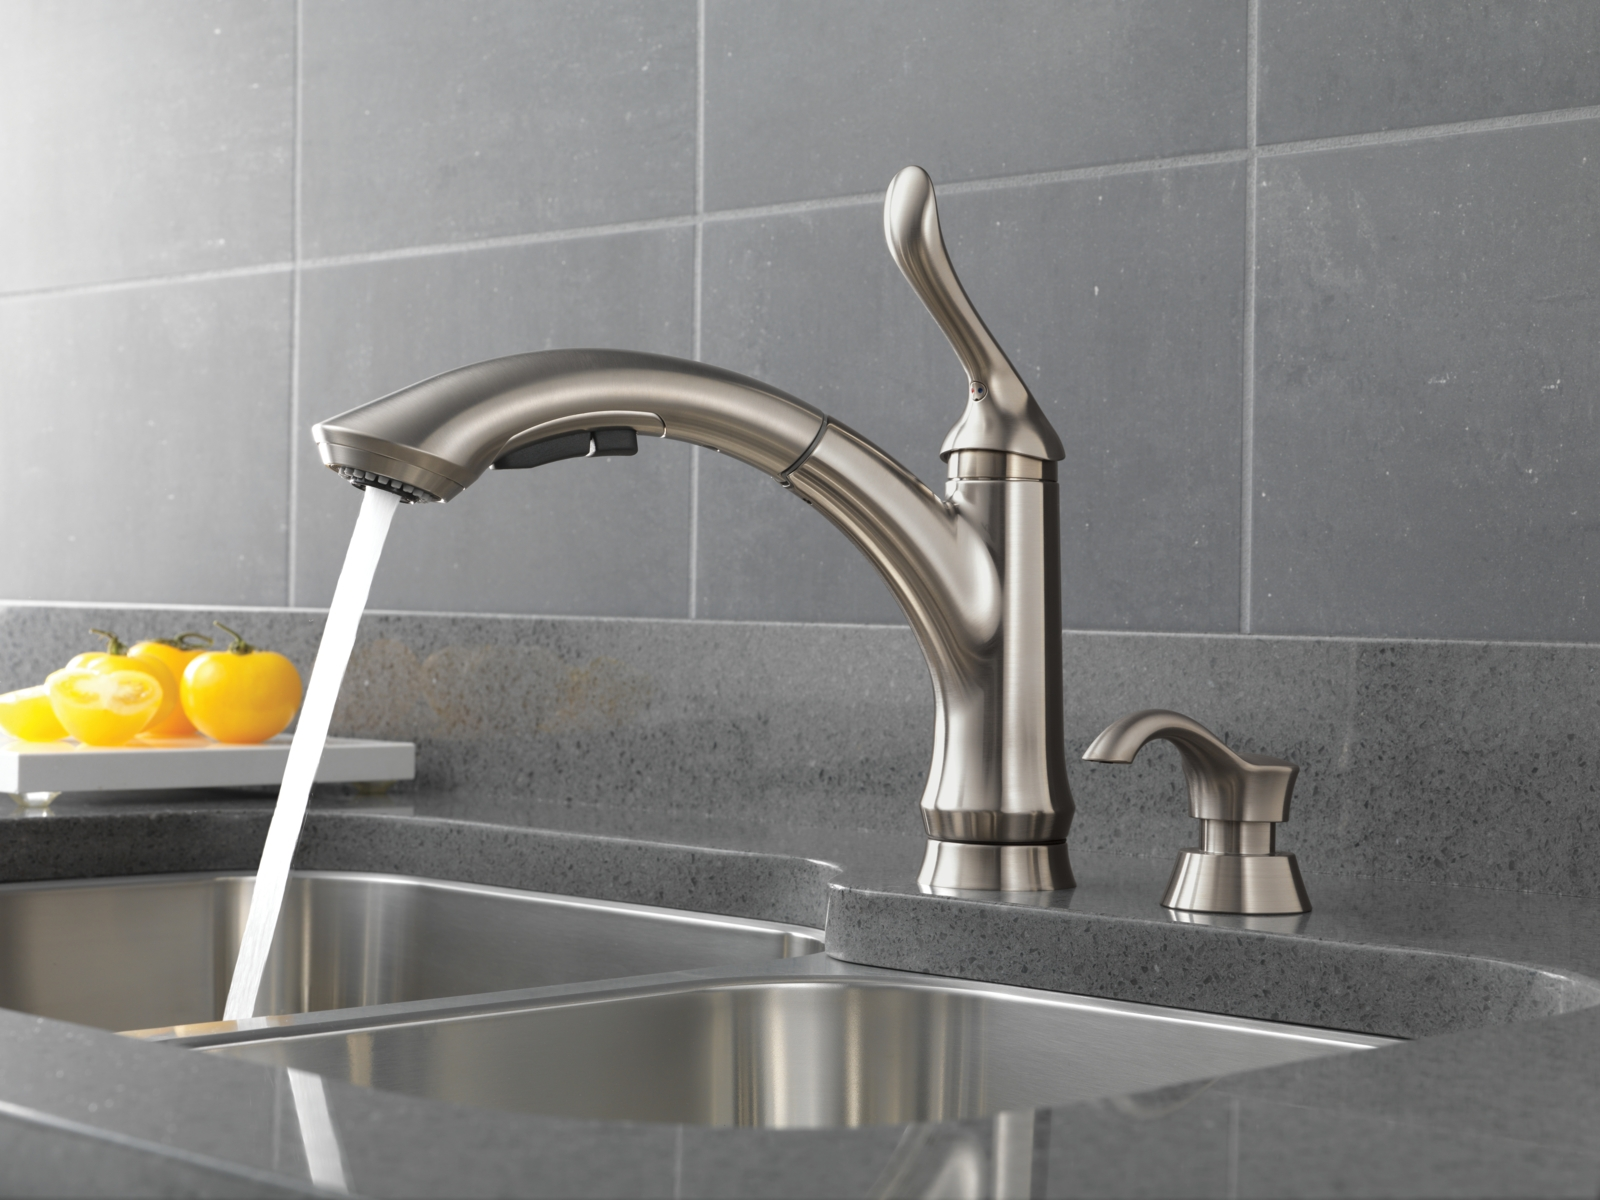 Ideas, laundry room faucets bronze laundry room faucets bronze linden kitchen collection 1600 x 1200  .